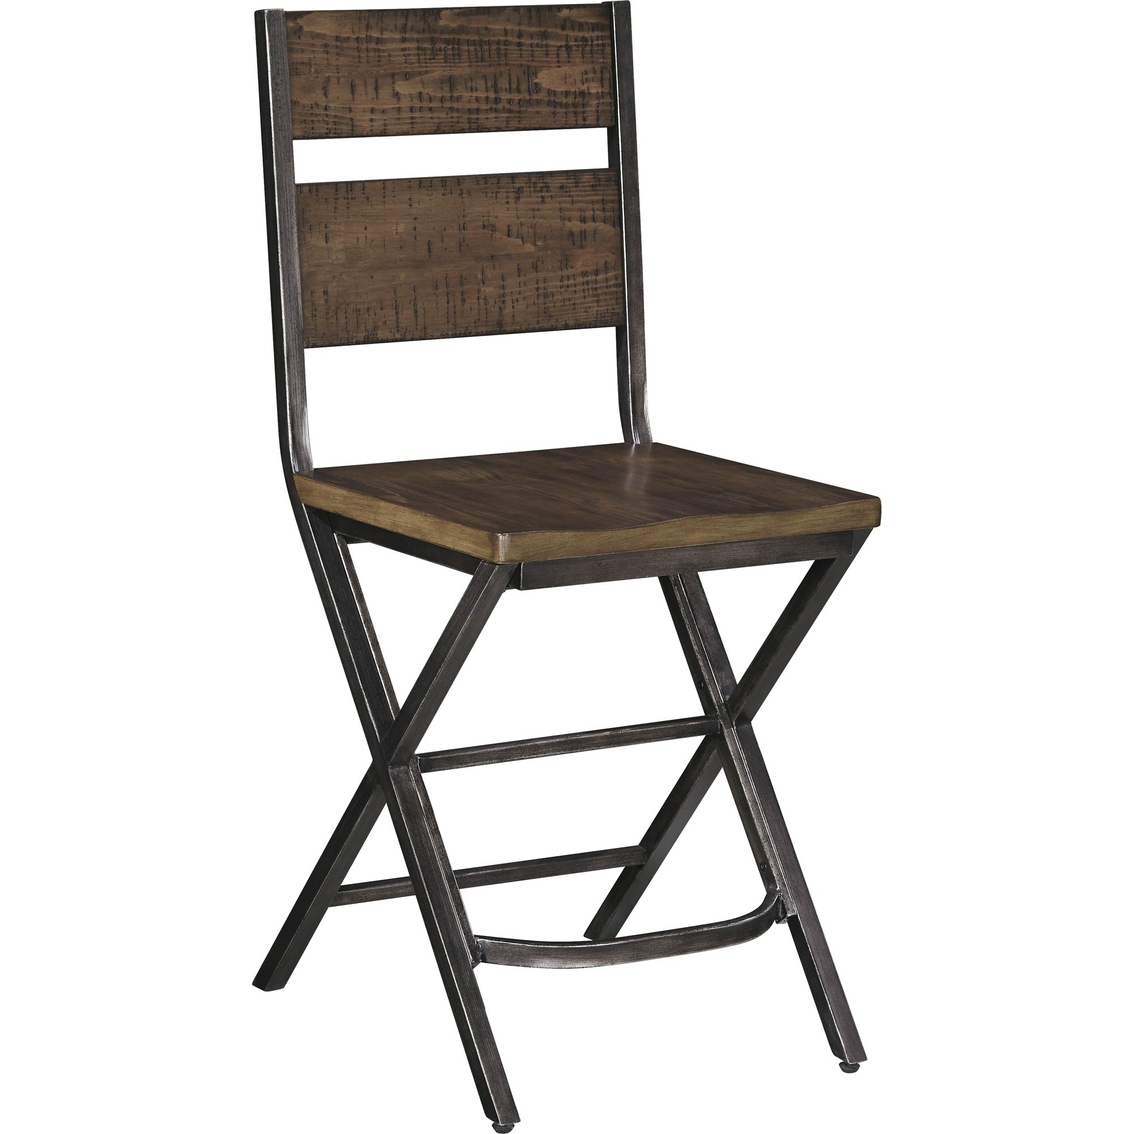 bar stool kit 28 images drafting chair with stool kit  : 78942421453 from melanora.info size 1134 x 1134 jpeg 267kB